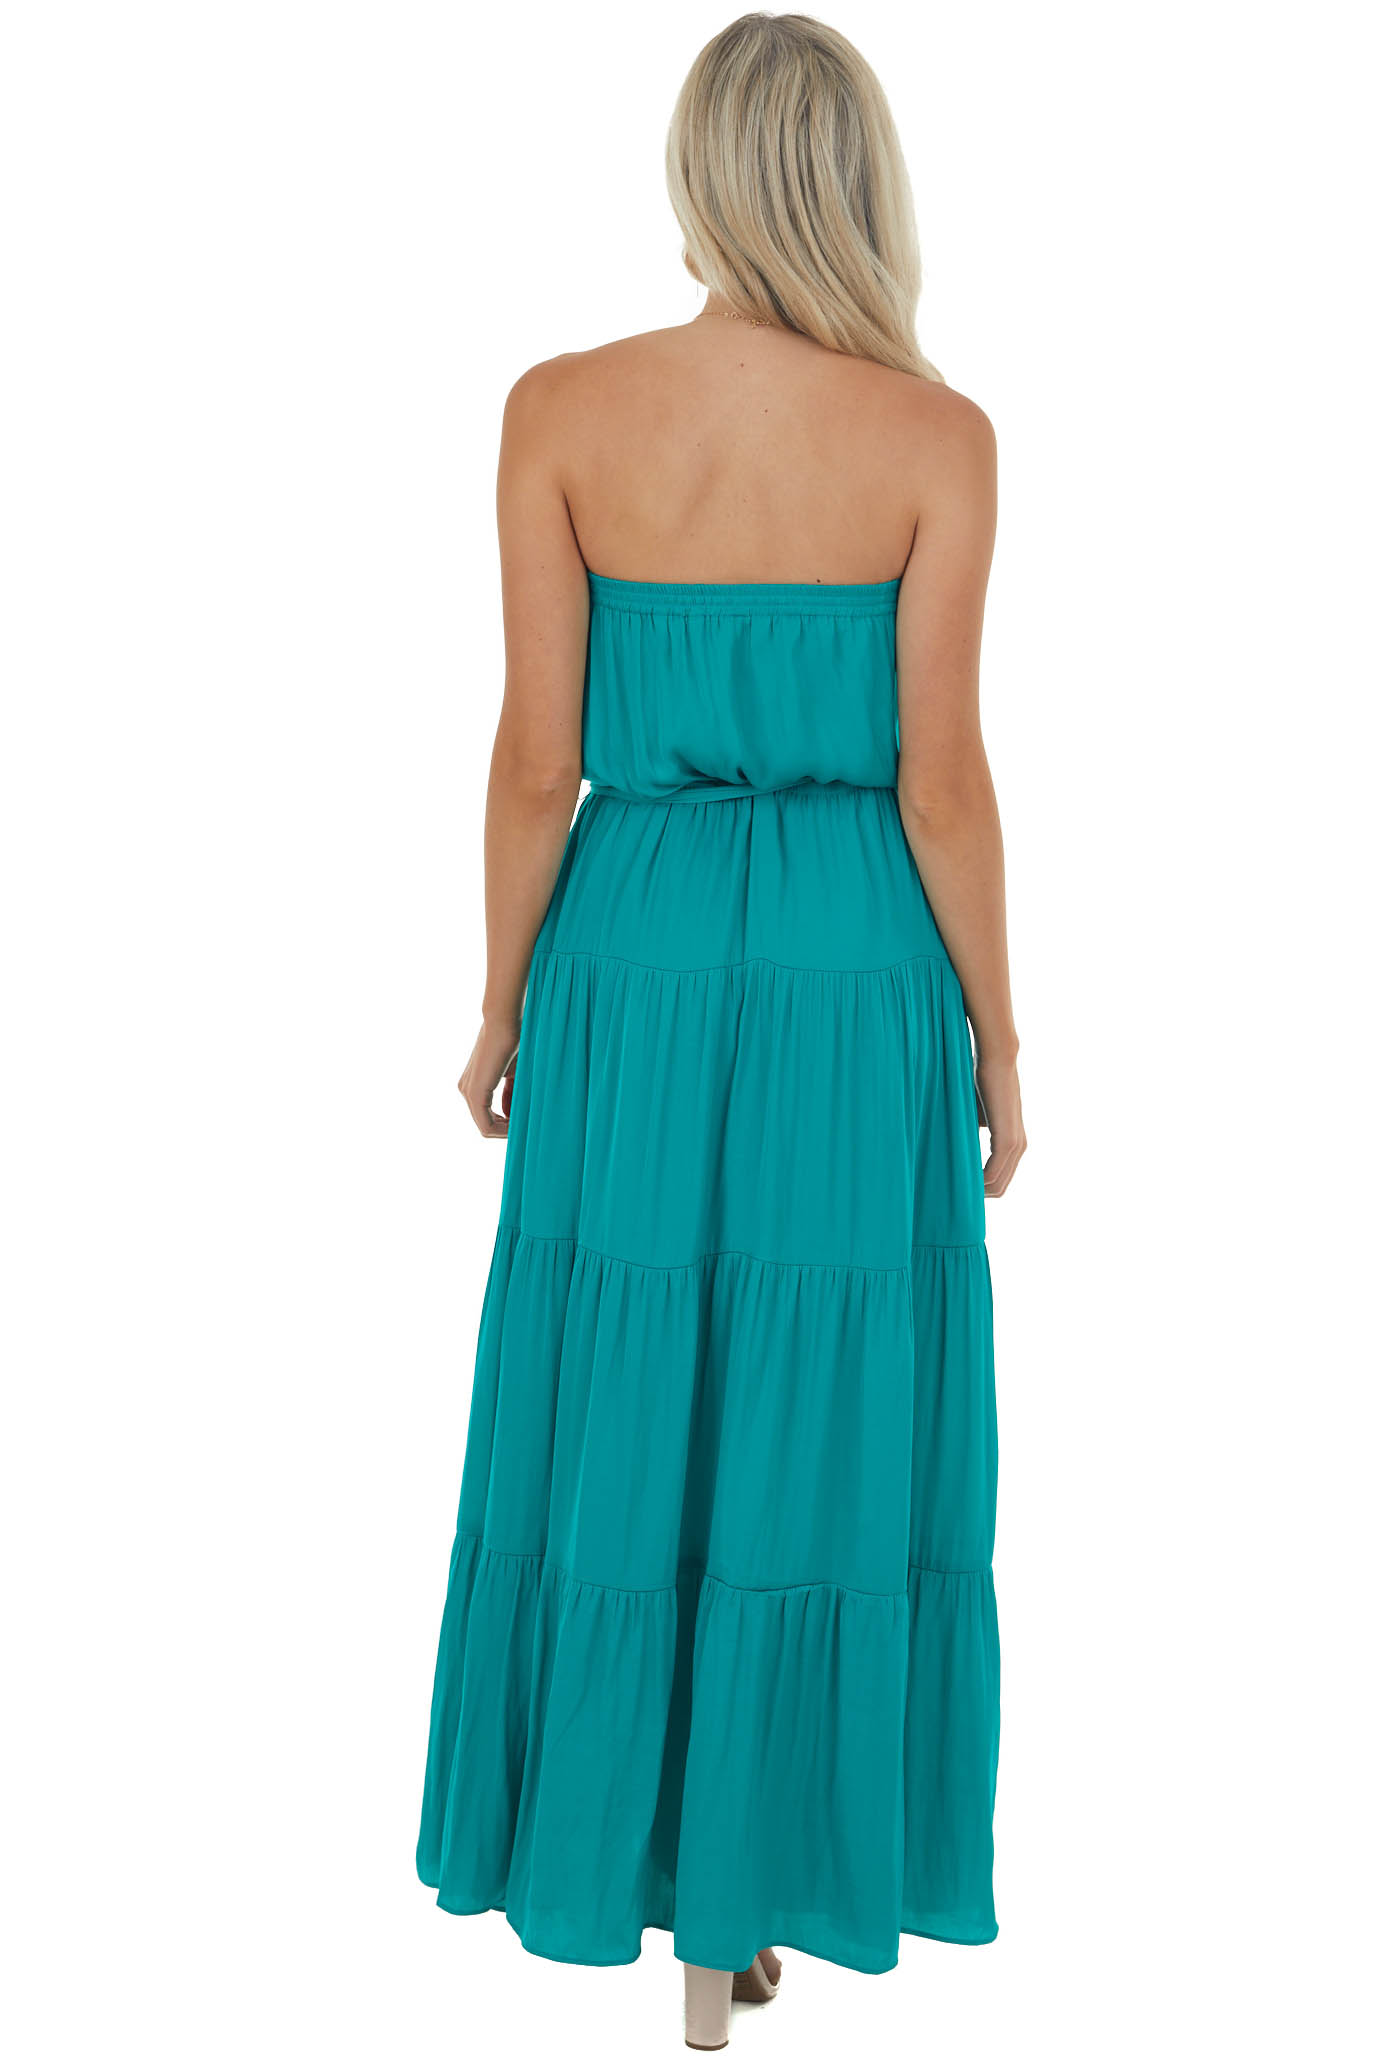 Jungle Green Tiered Strapless Maxi Dress with Elastic Waist